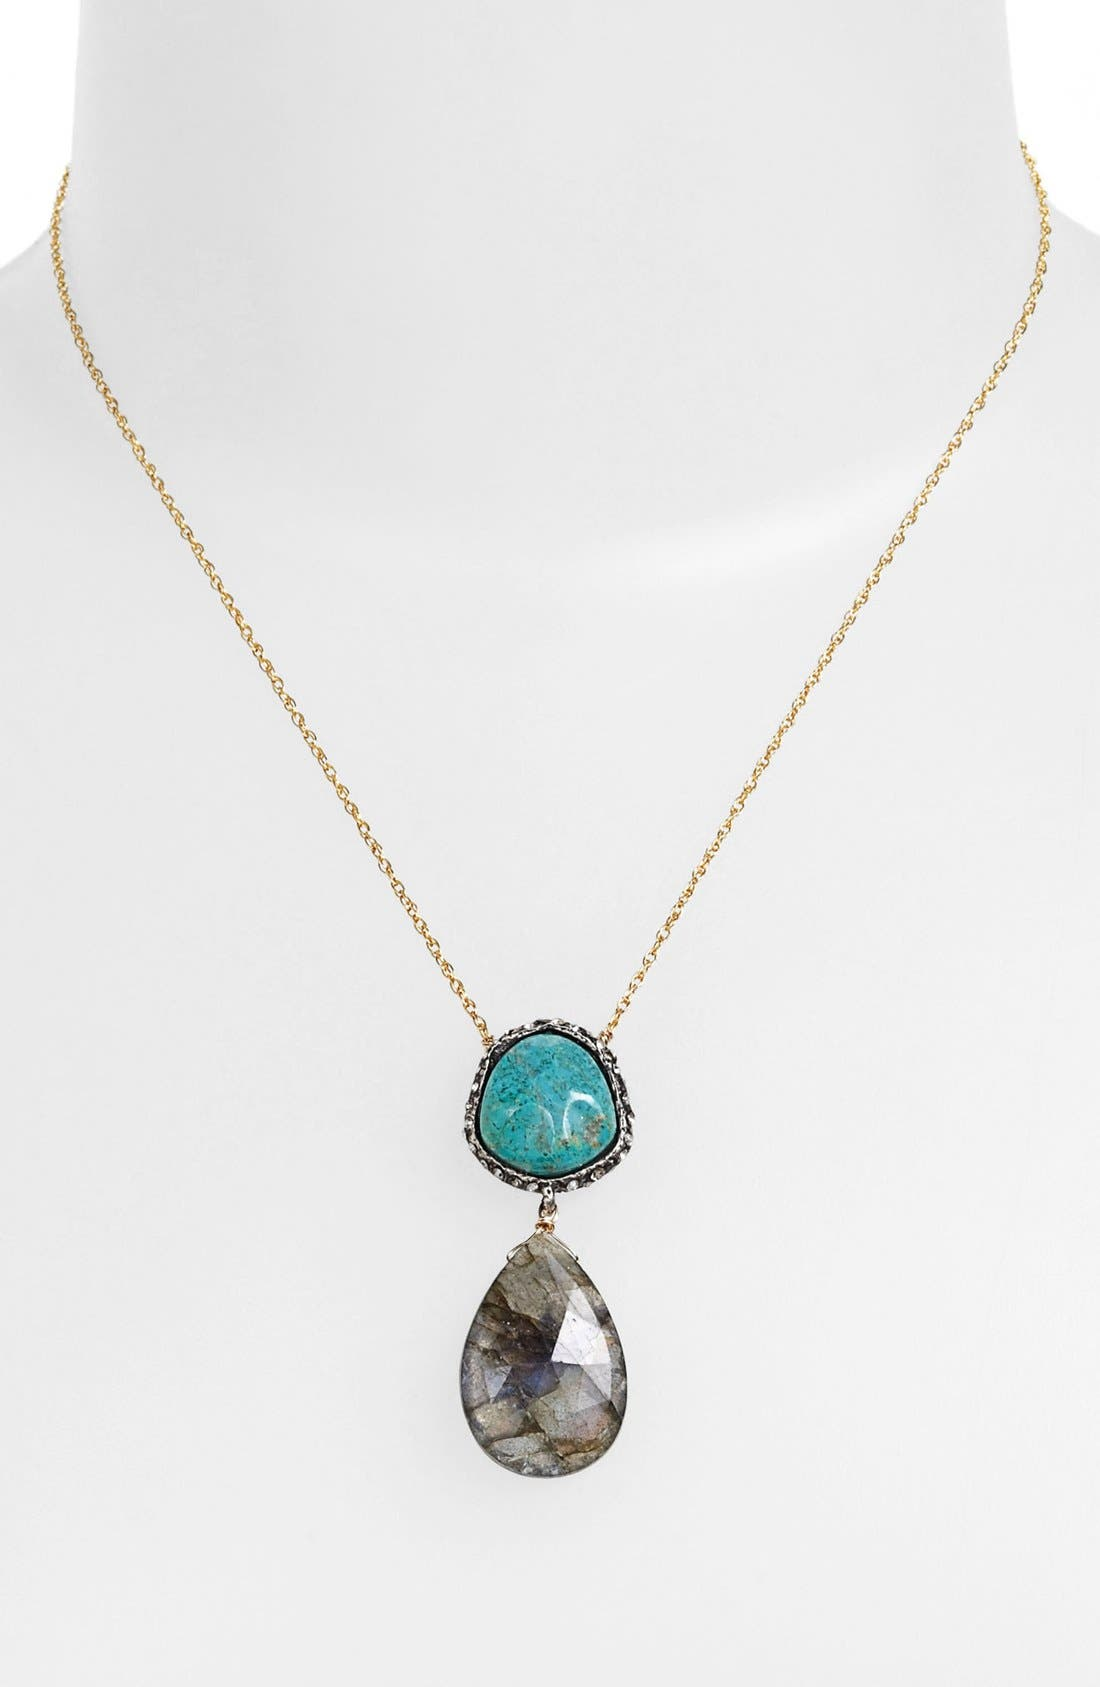 Main Image - Alexis Bittar 'Elements - Cordova' Pendant Necklace